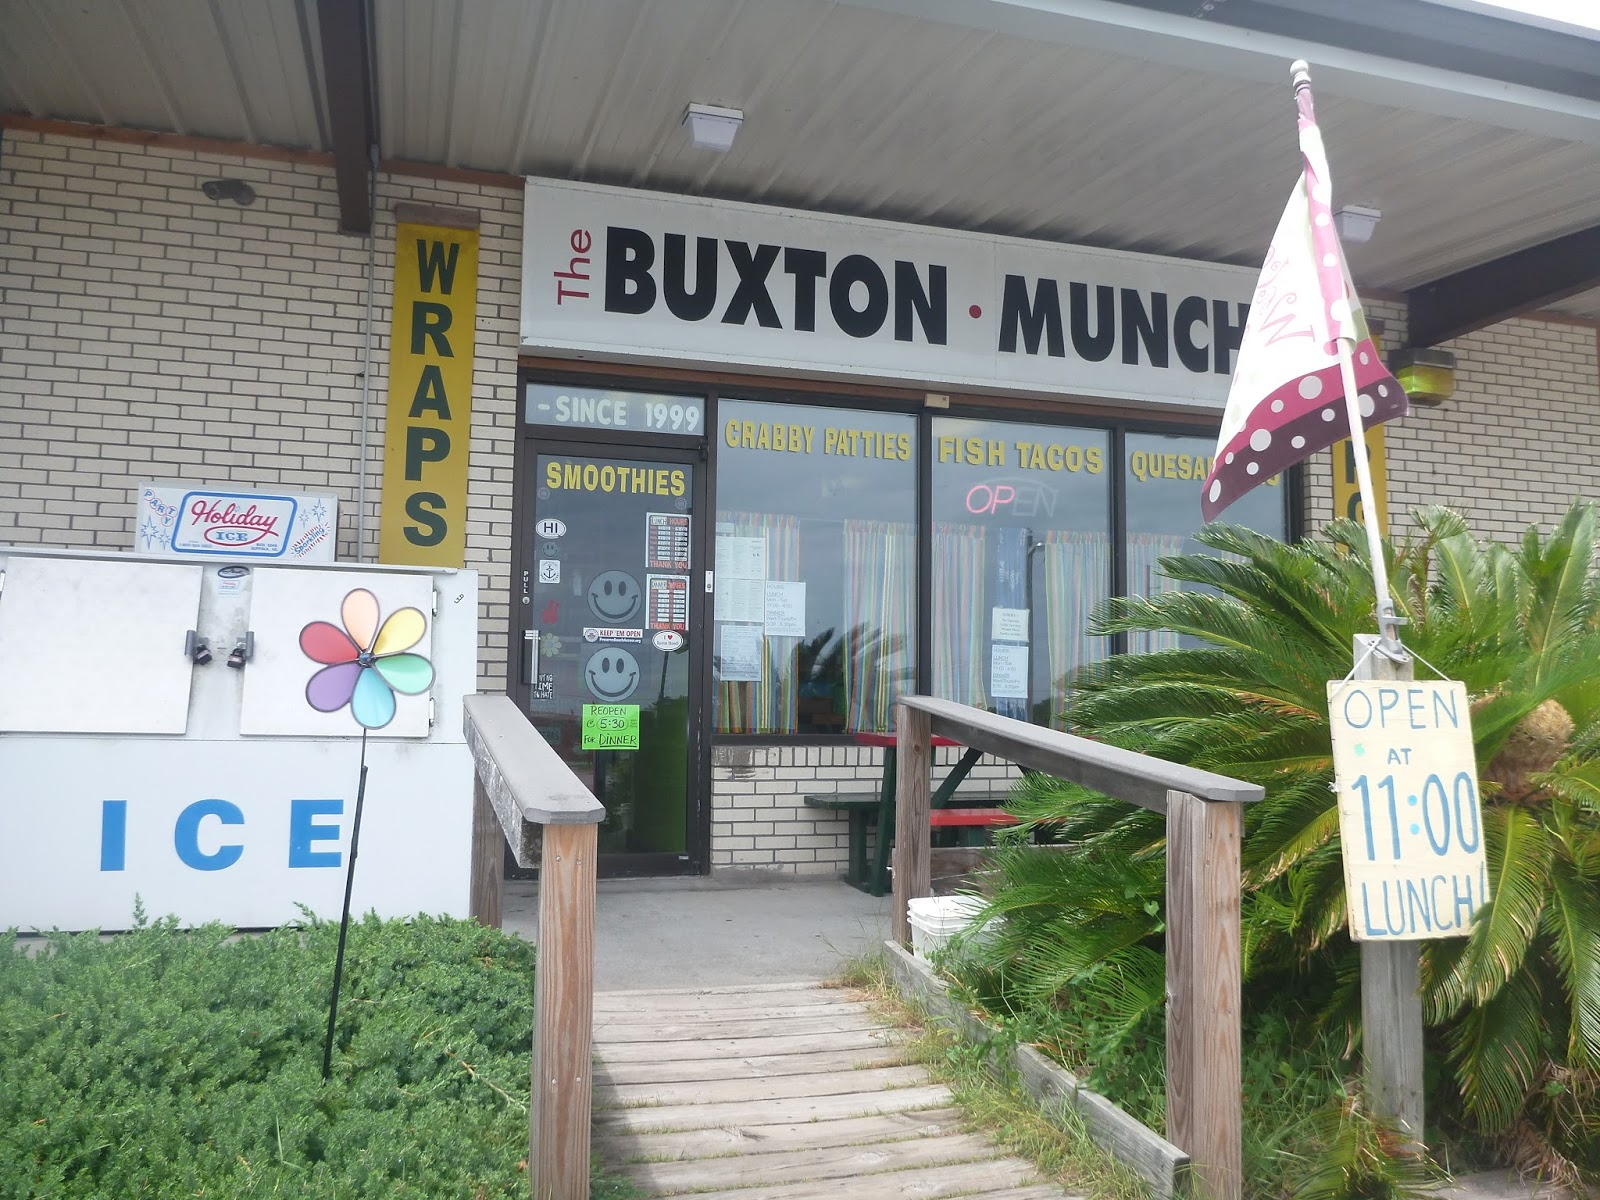 Buxton Munch: Don't Judge a Book by Its Cover